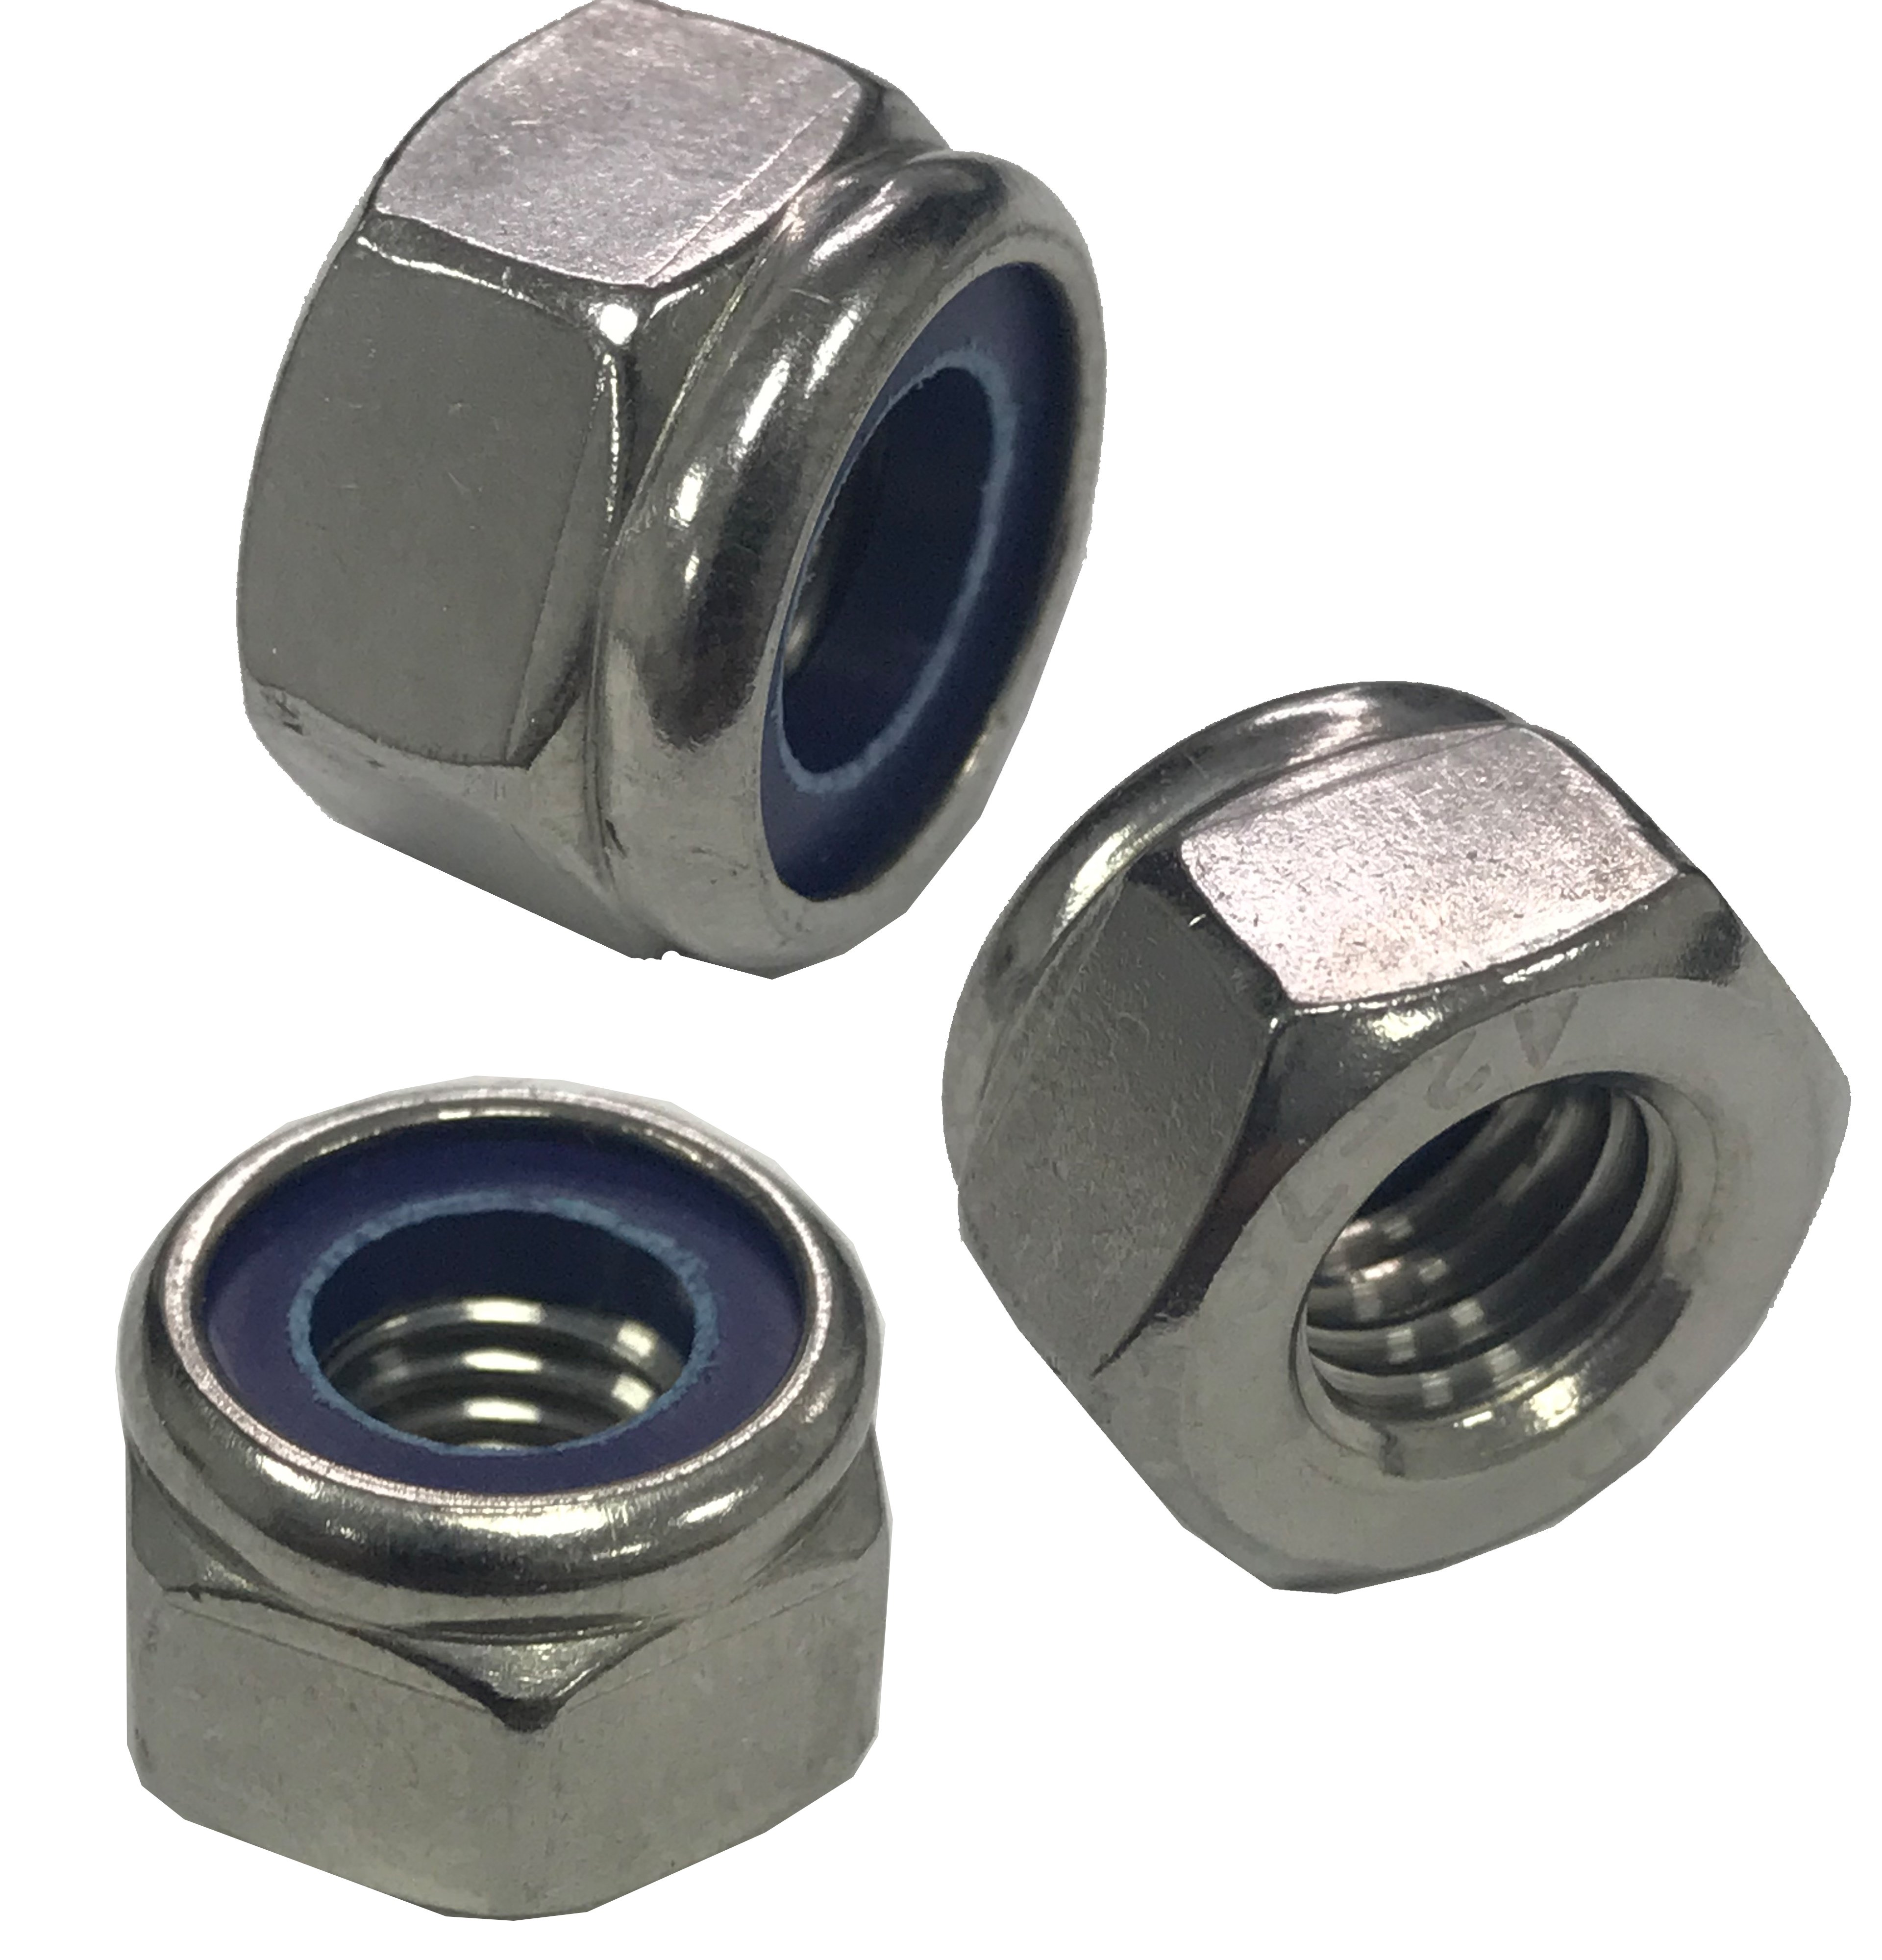 M2 STAINLESS NYLOC NYLOCK LOCK NUTS 10 PACK